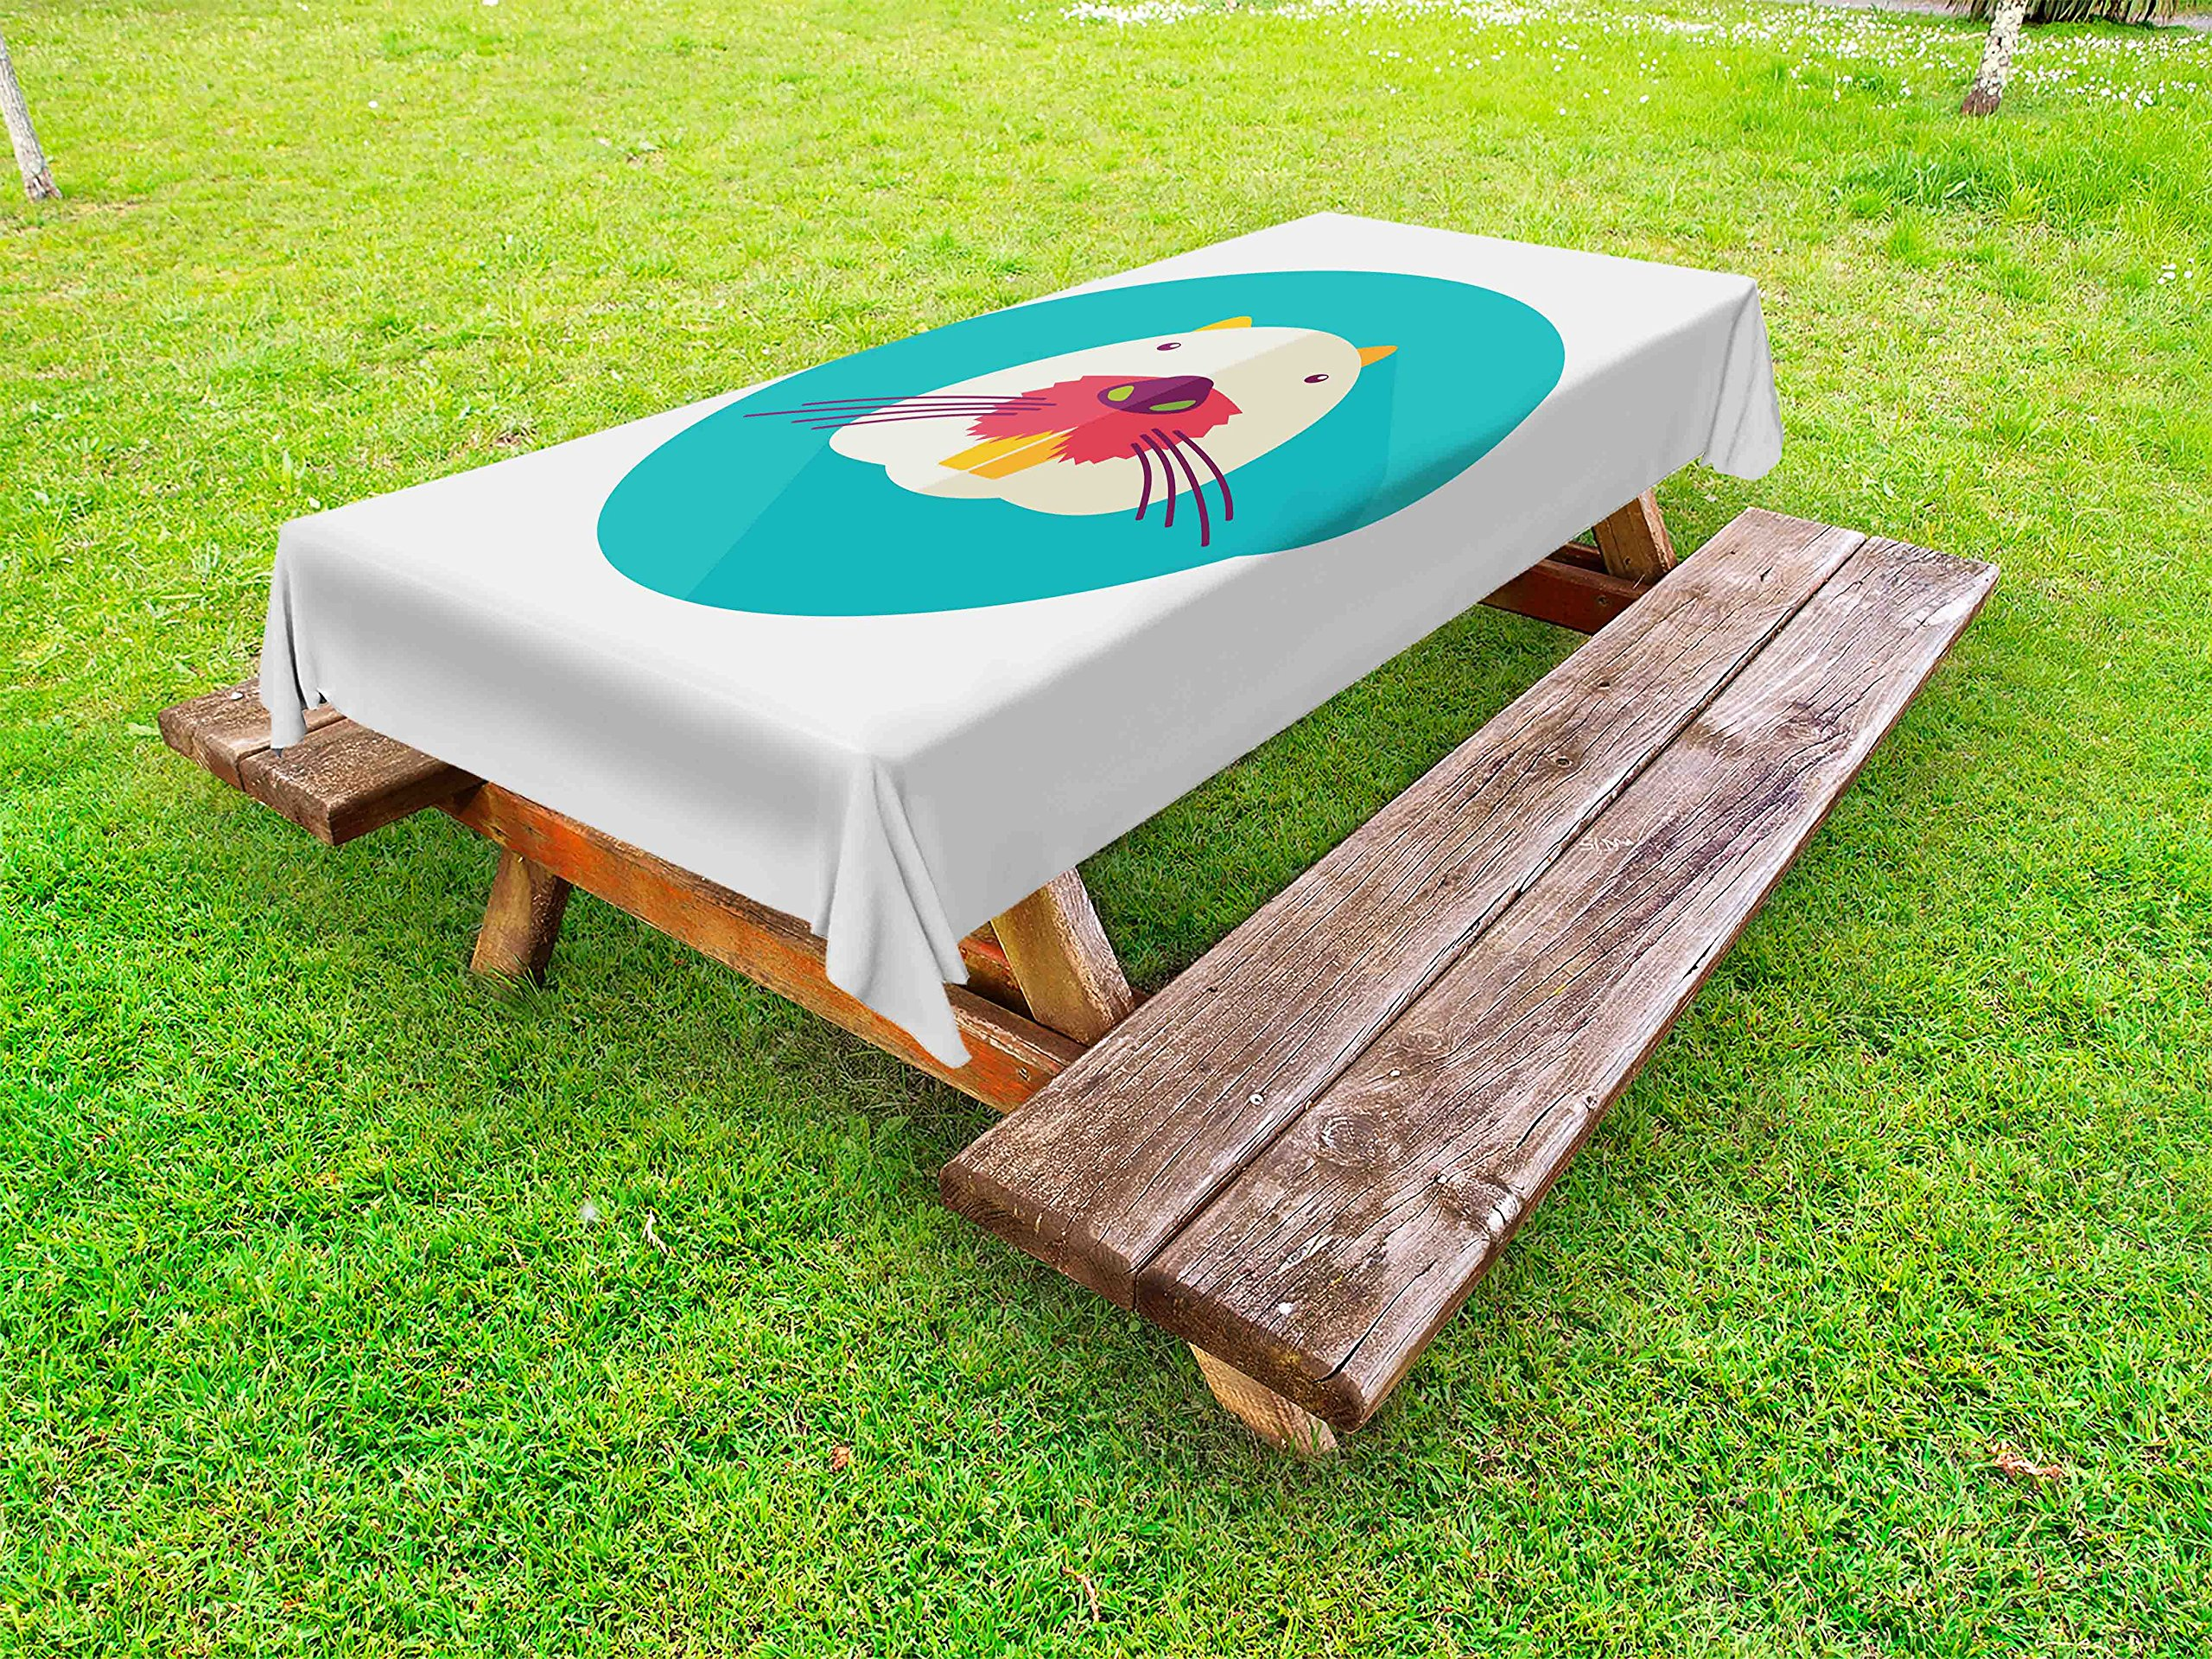 Ambesonne Colorful Outdoor Tablecloth, Beaver Portrait with Small Eyes and Giant Teeth Cartoon Style Animal Illustration, Decorative Washable Picnic Table Cloth, 58 X 104 inches, Multicolor